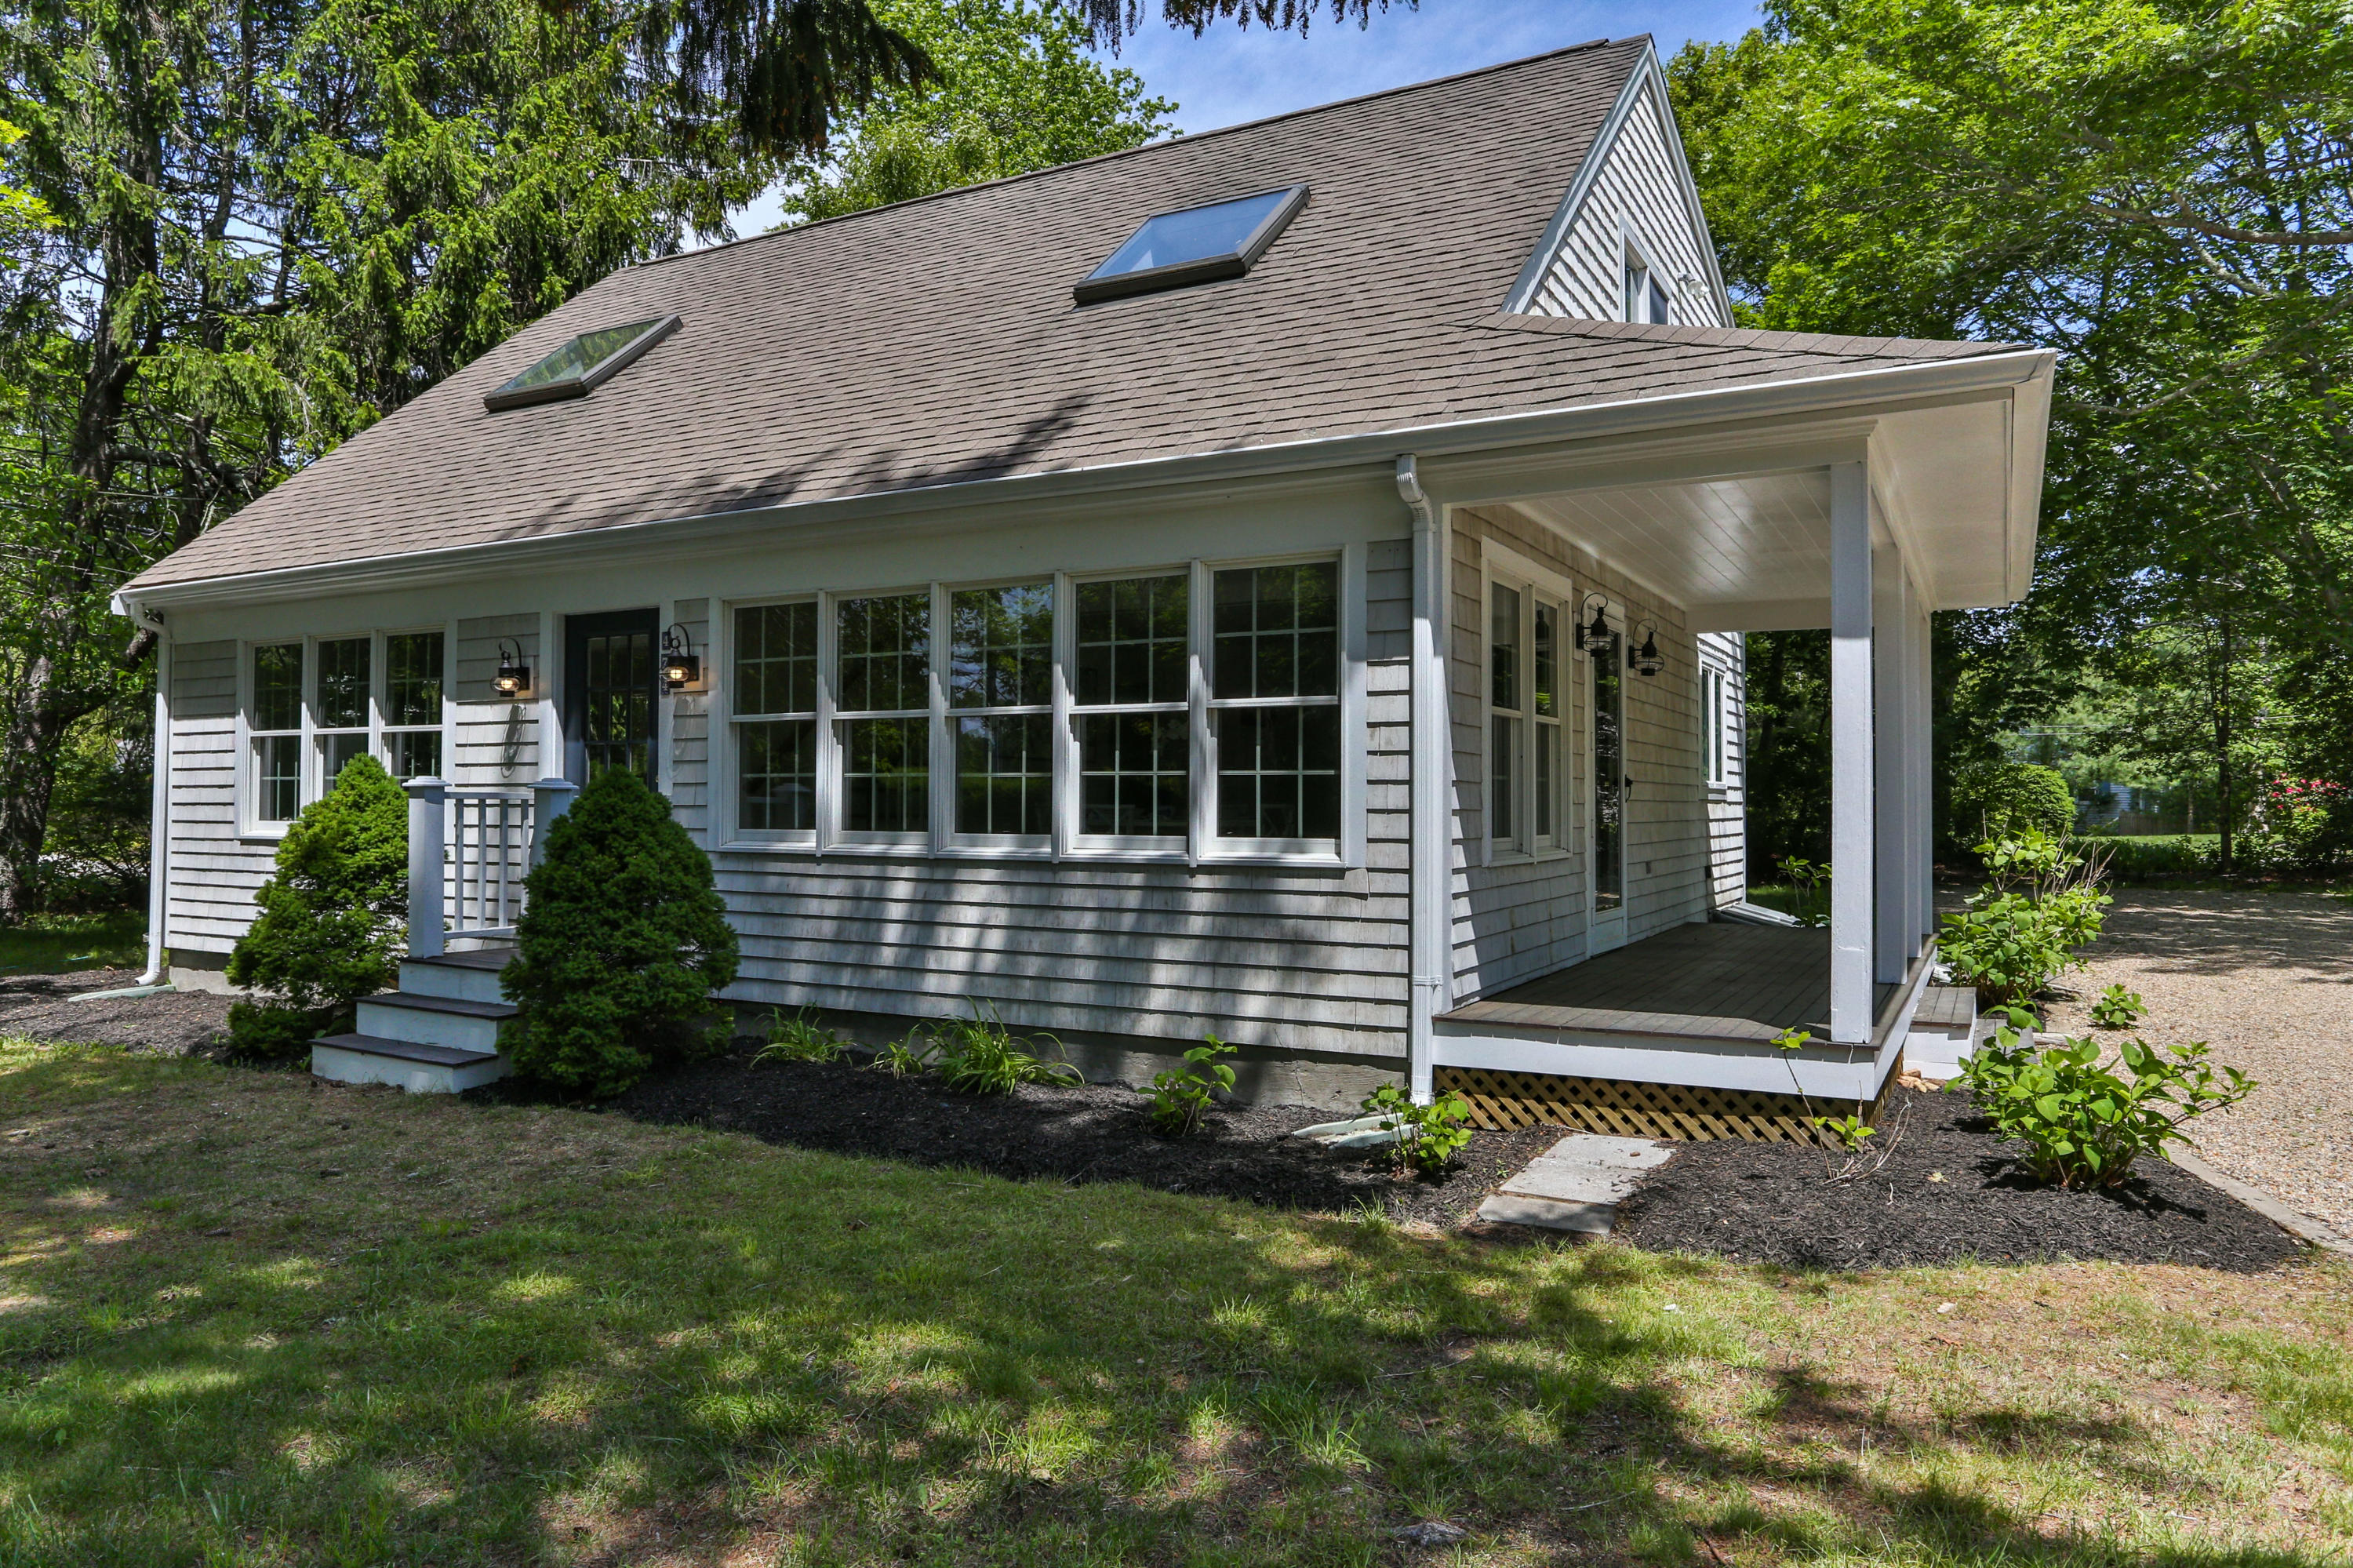 474 Strawberry Hill Road, Centerville